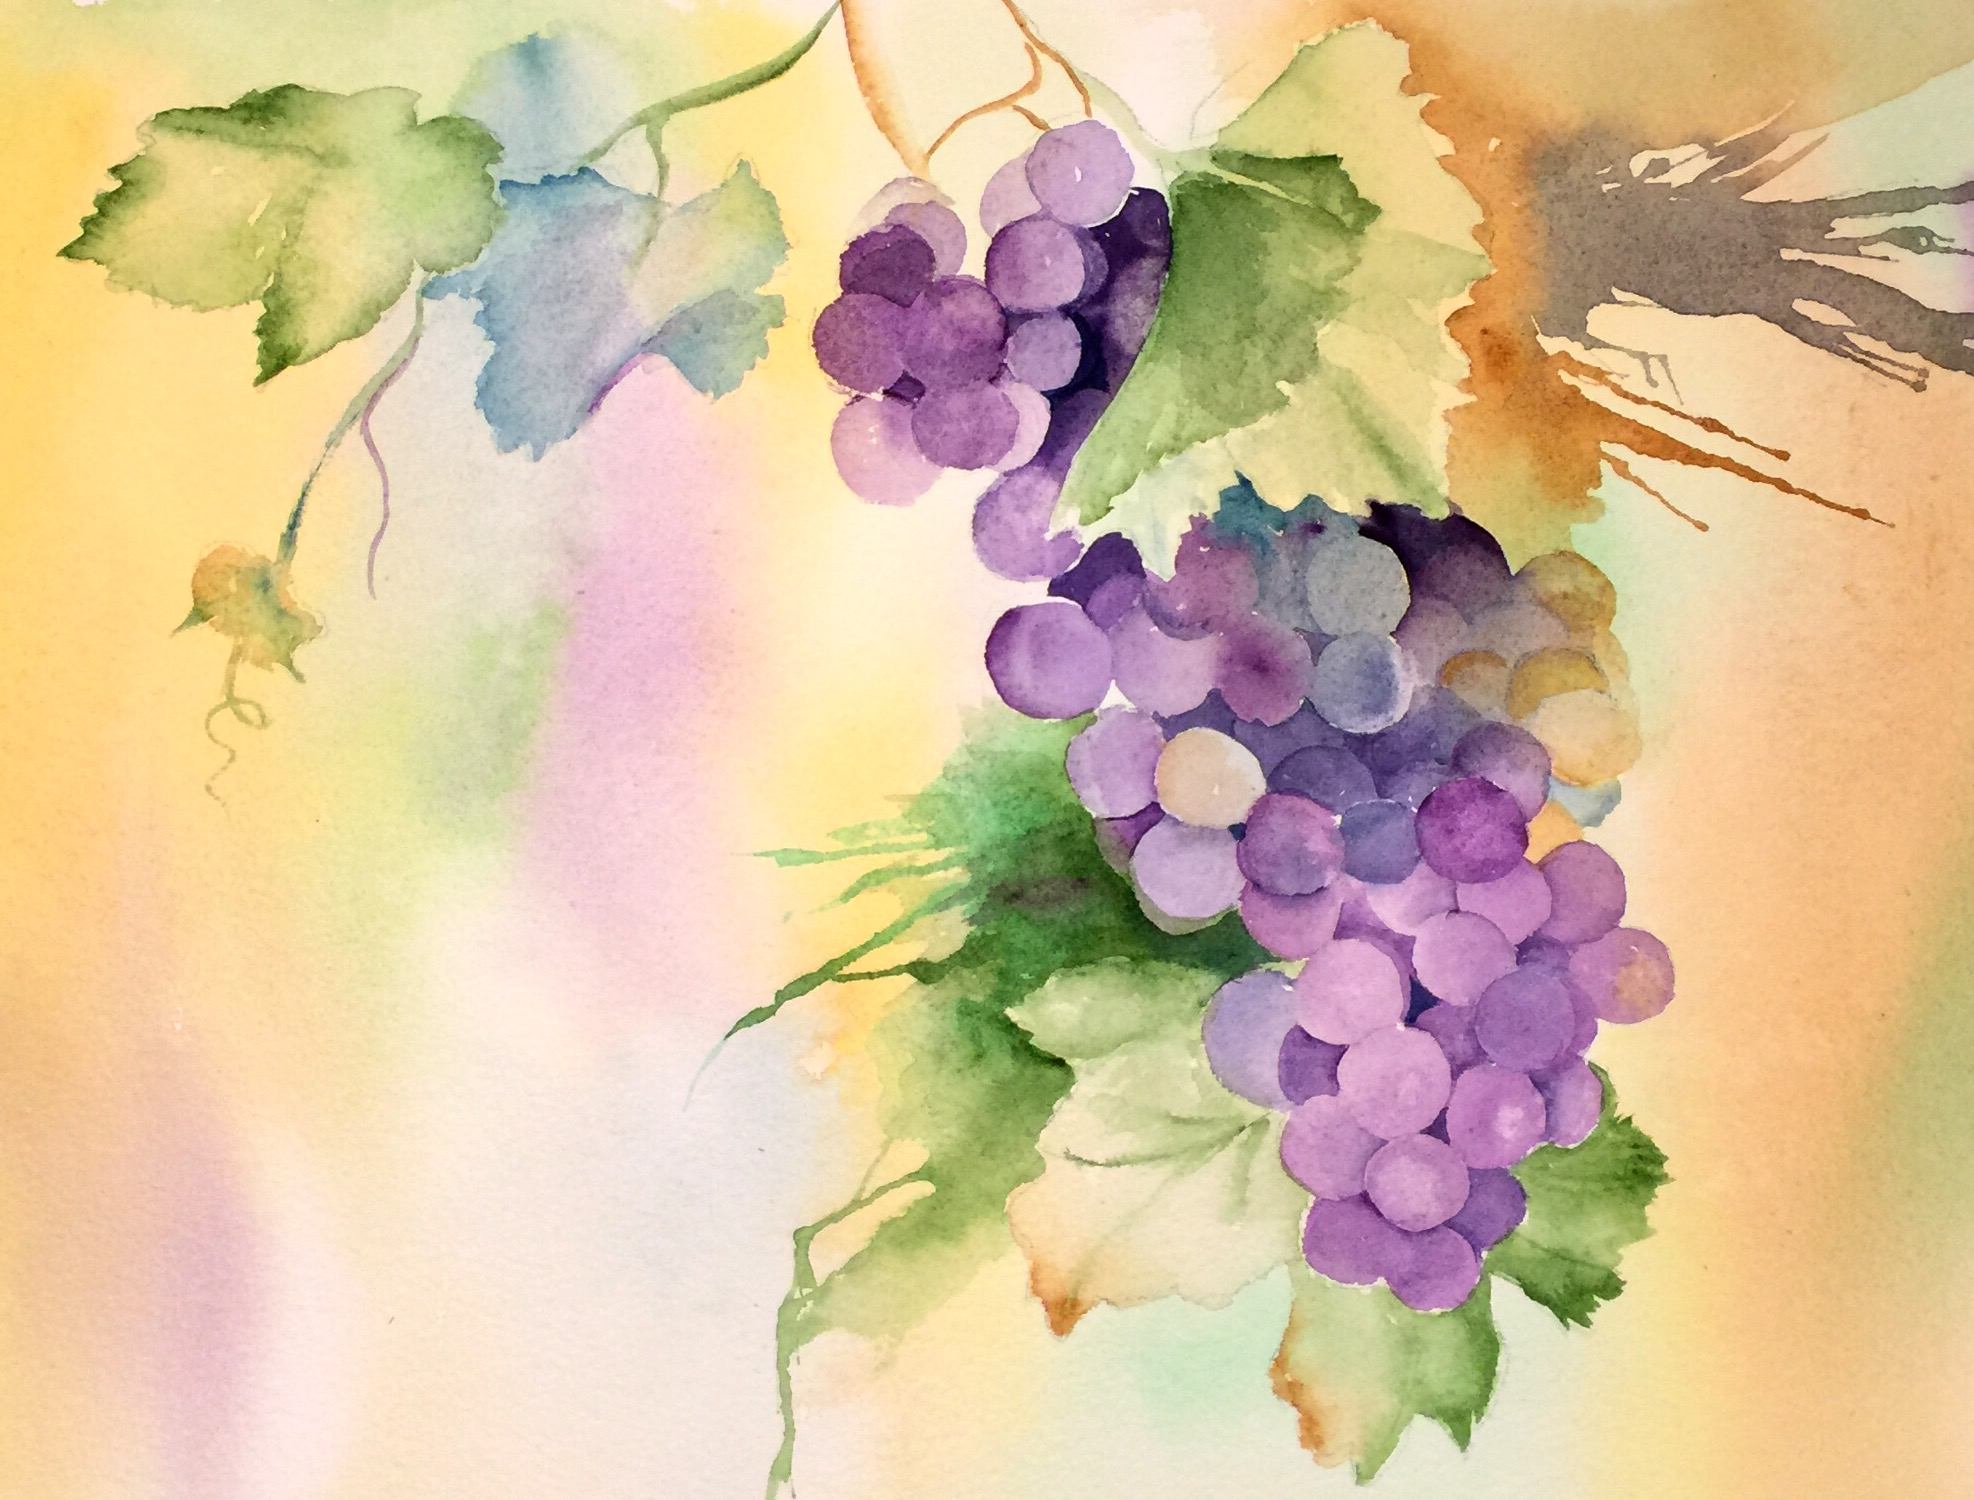 TryItGrapes